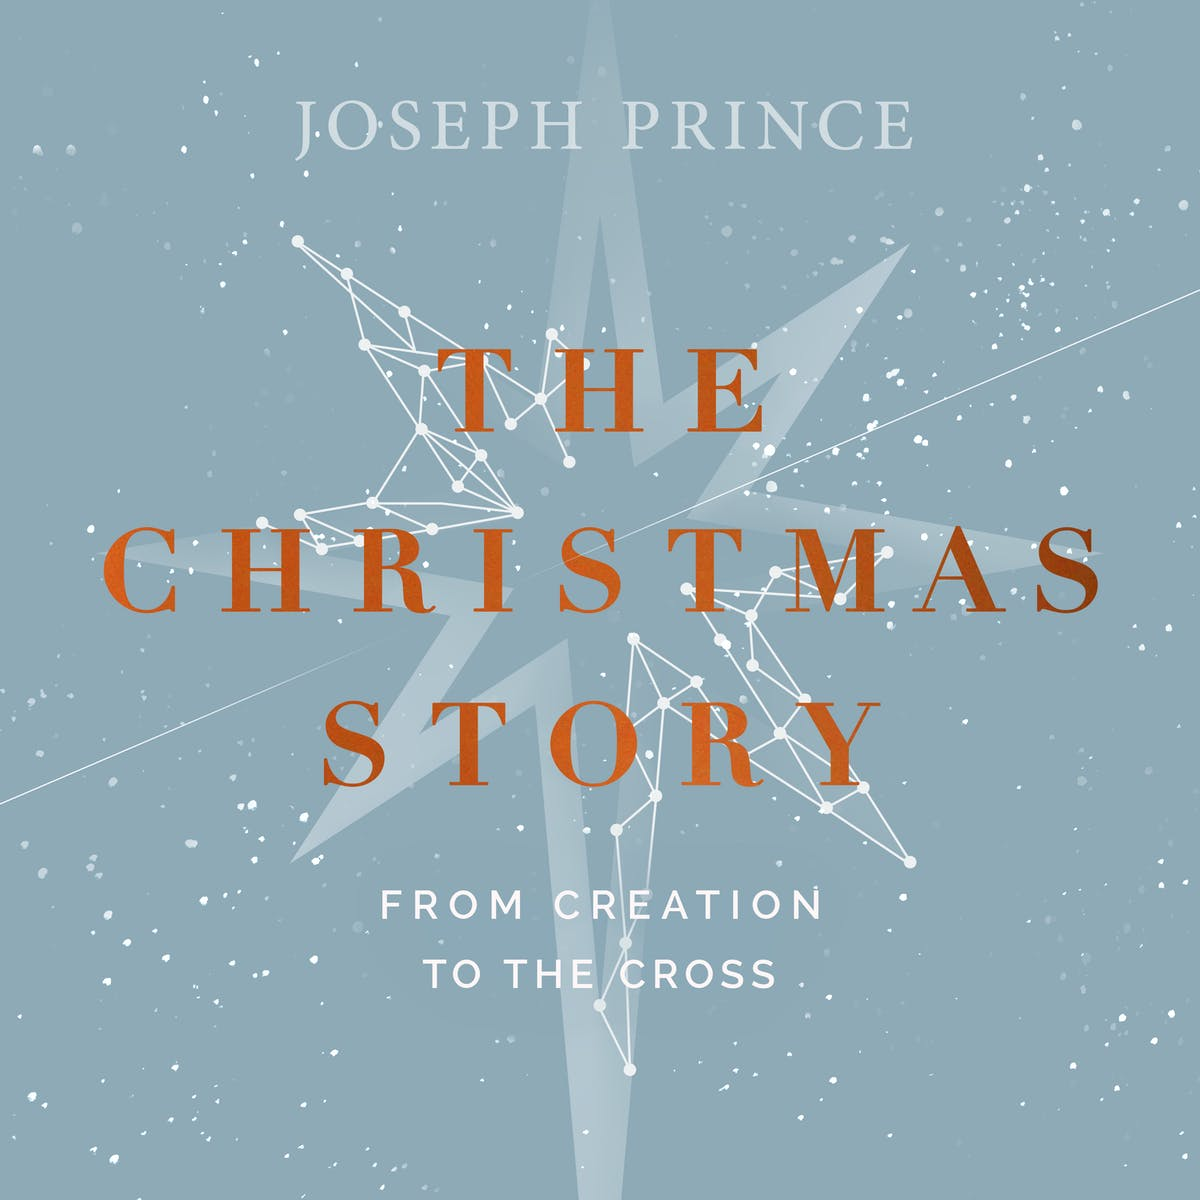 The Christmas Story—From Creation To The Cross | Official Joseph